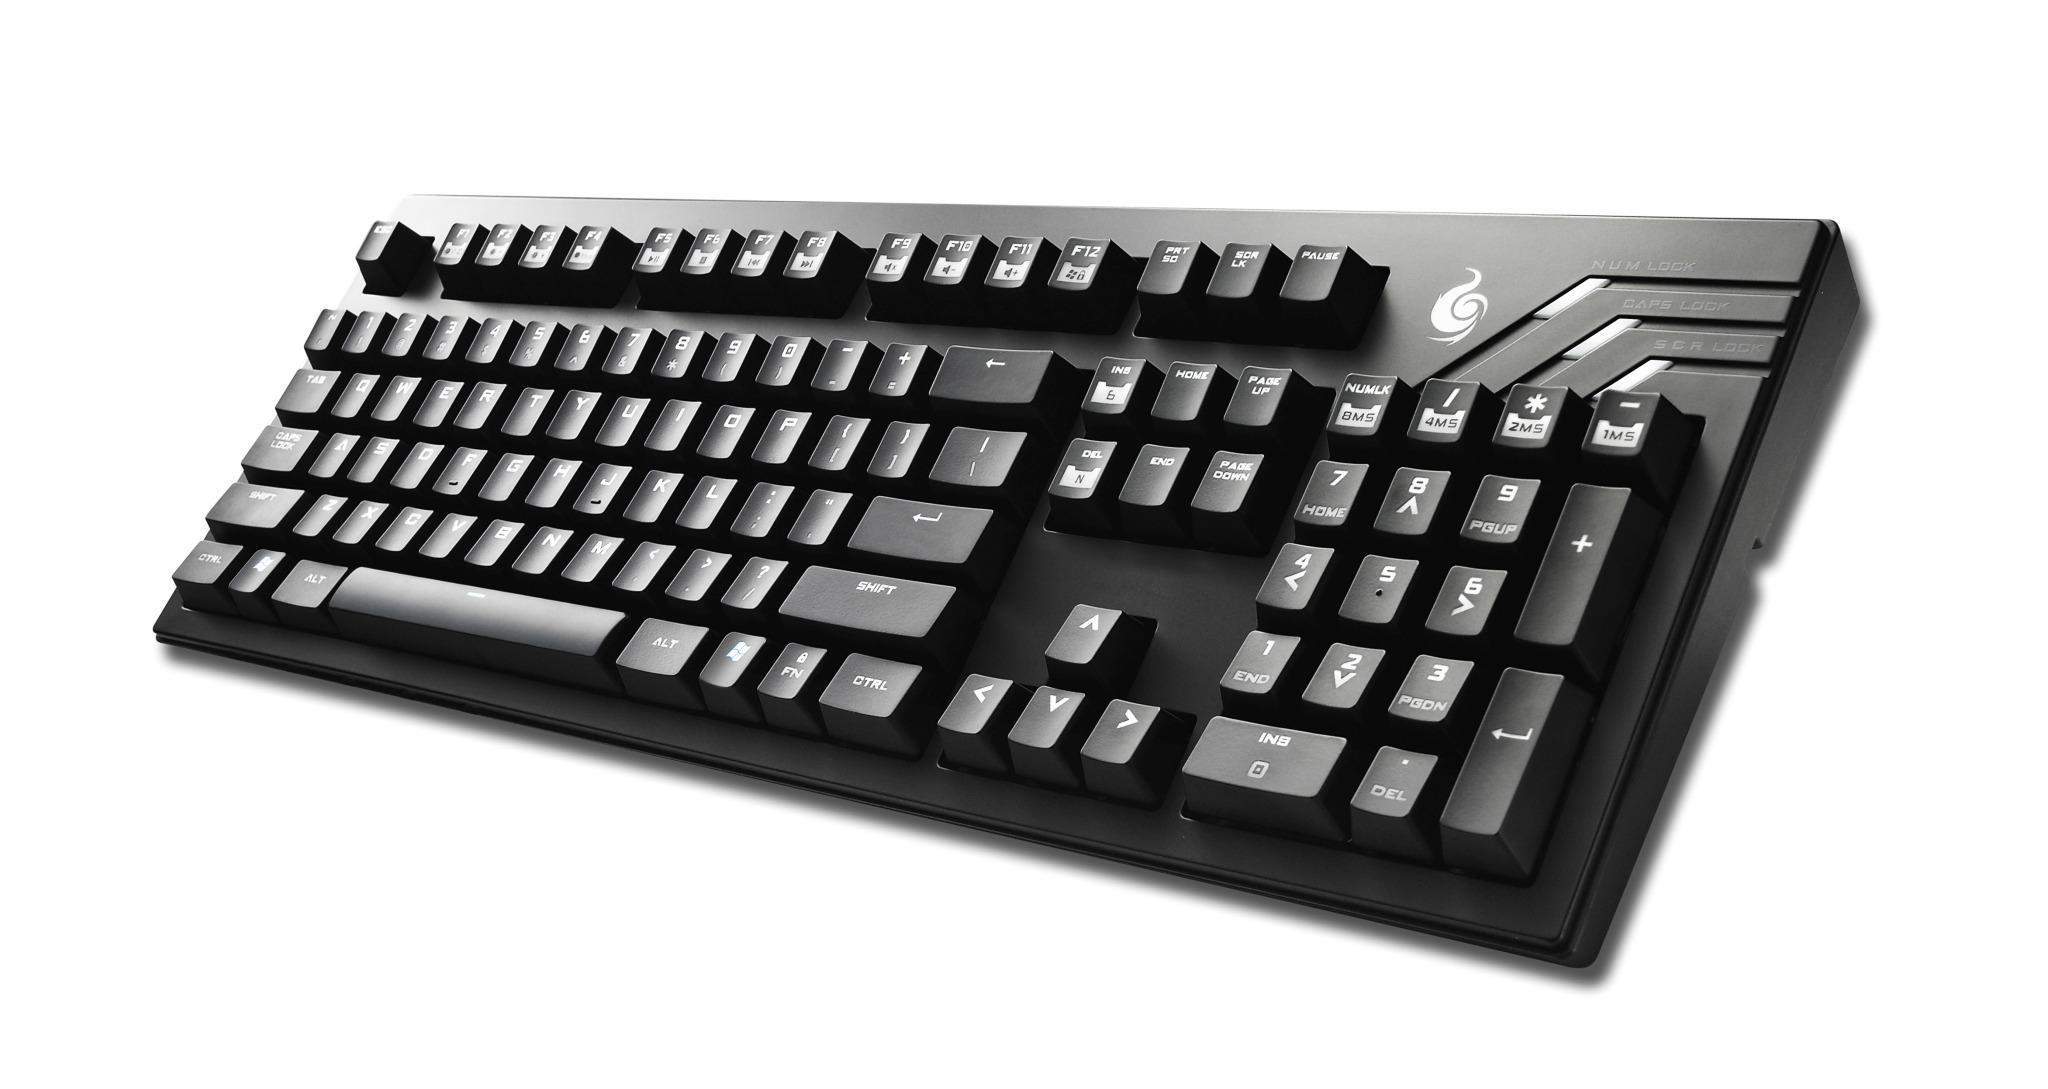 Cooler Master Quick Fire Ultimate Mechanical Gaming Keyboard Blue MX CHERRY Switches